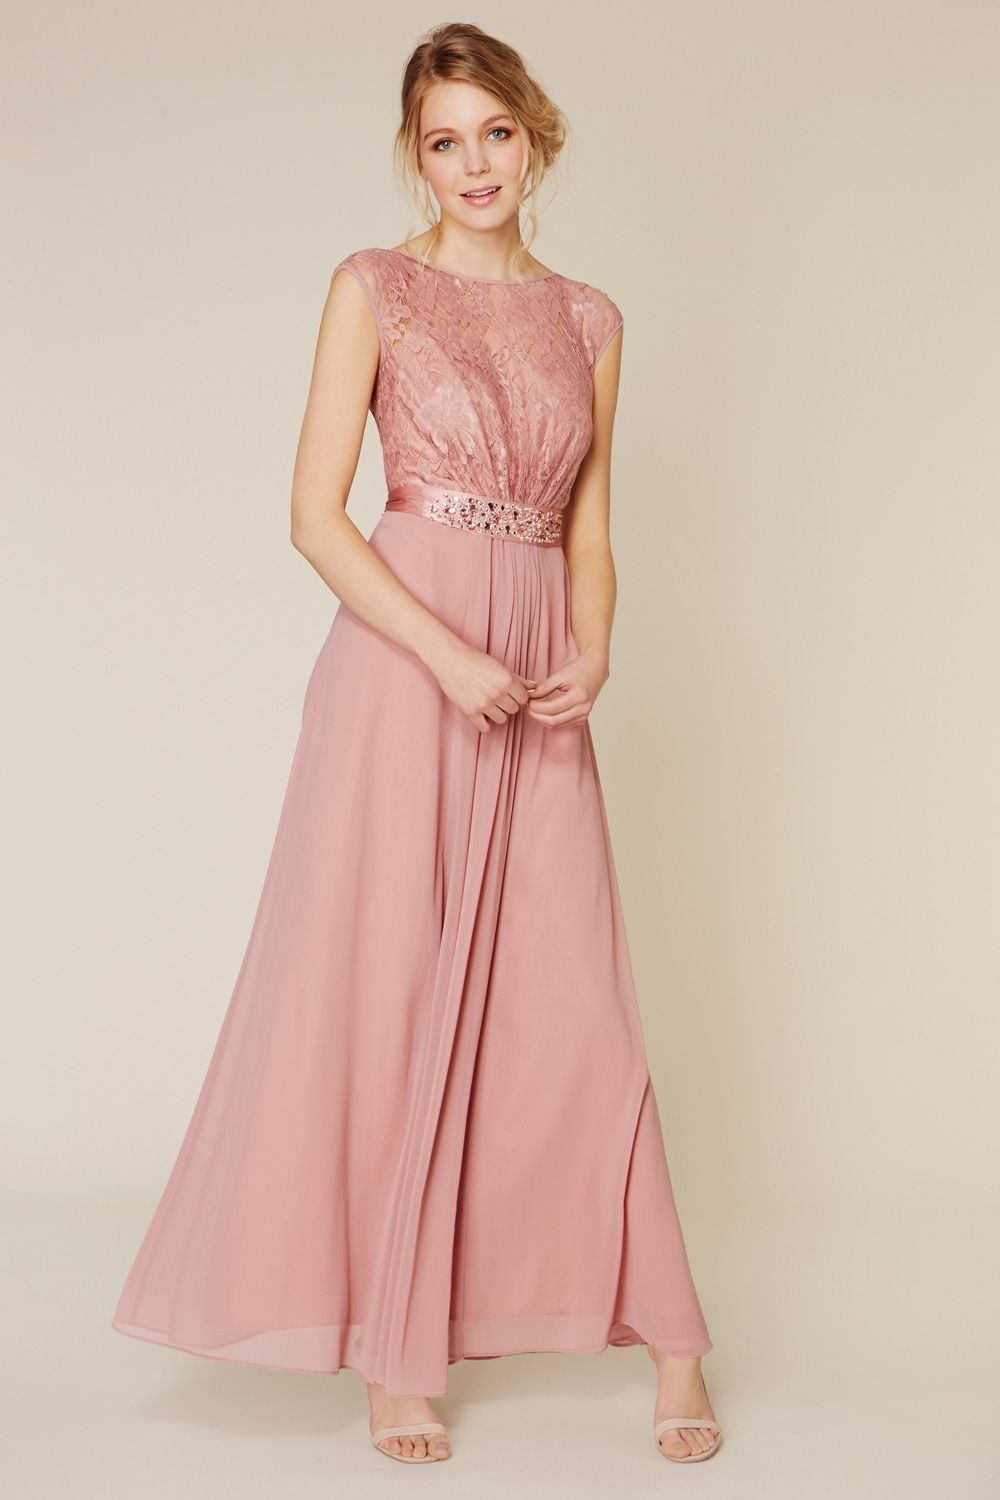 All Dresses | Pinks LORI LEE LACE MAXI DRESS | Coast Stores Limited ...